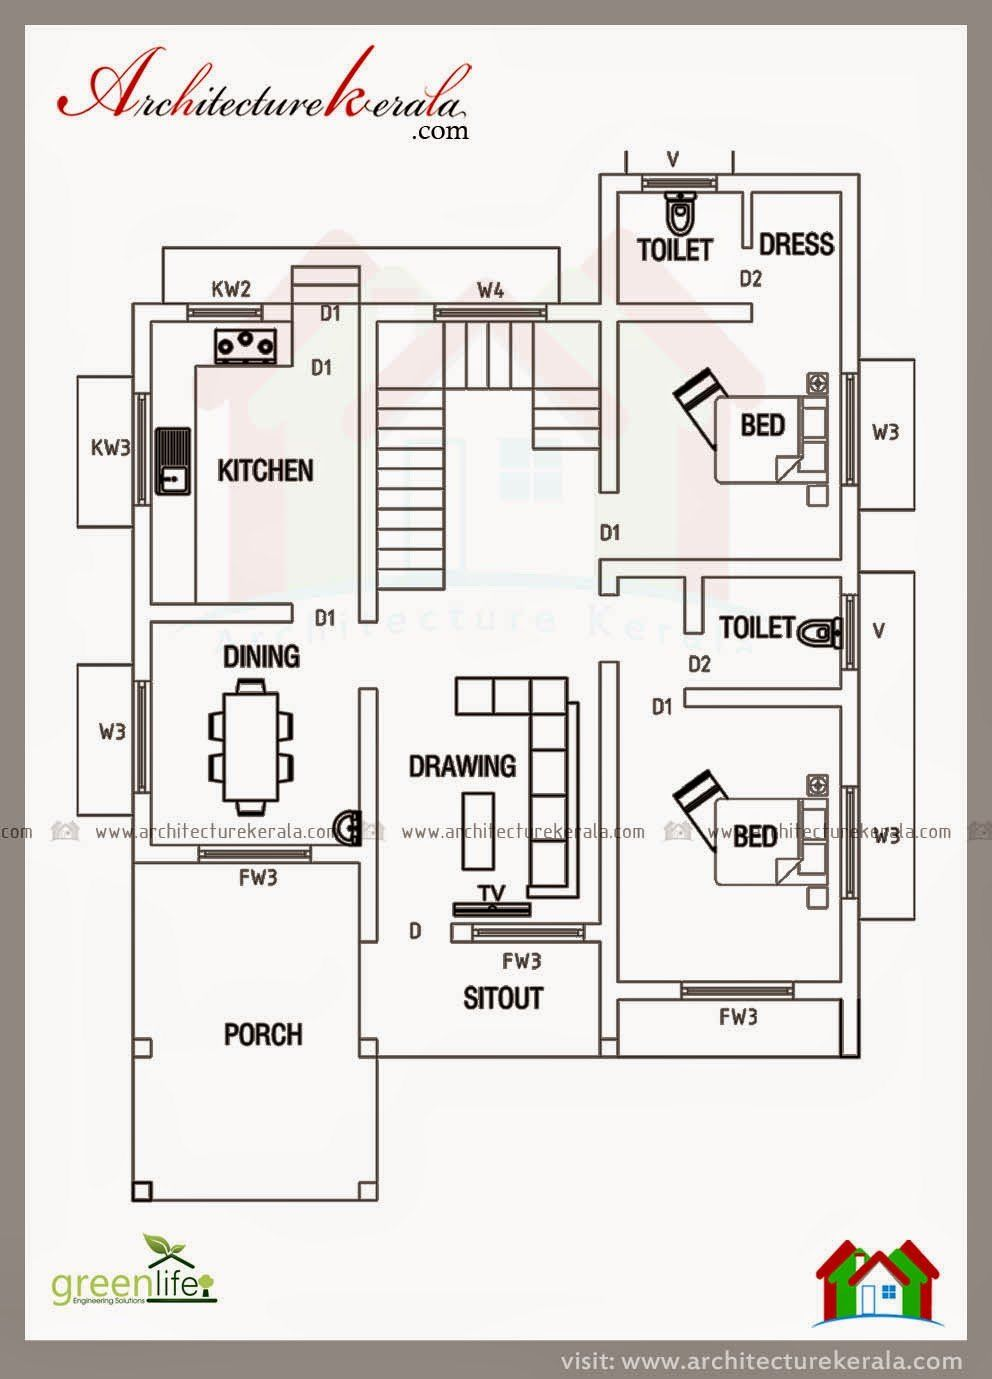 2500 Sq Foot House Plans New Below 2000 Square Feet House Plan And Elevation In 2020 2bhk House Plan New House Plans House Layout Plans